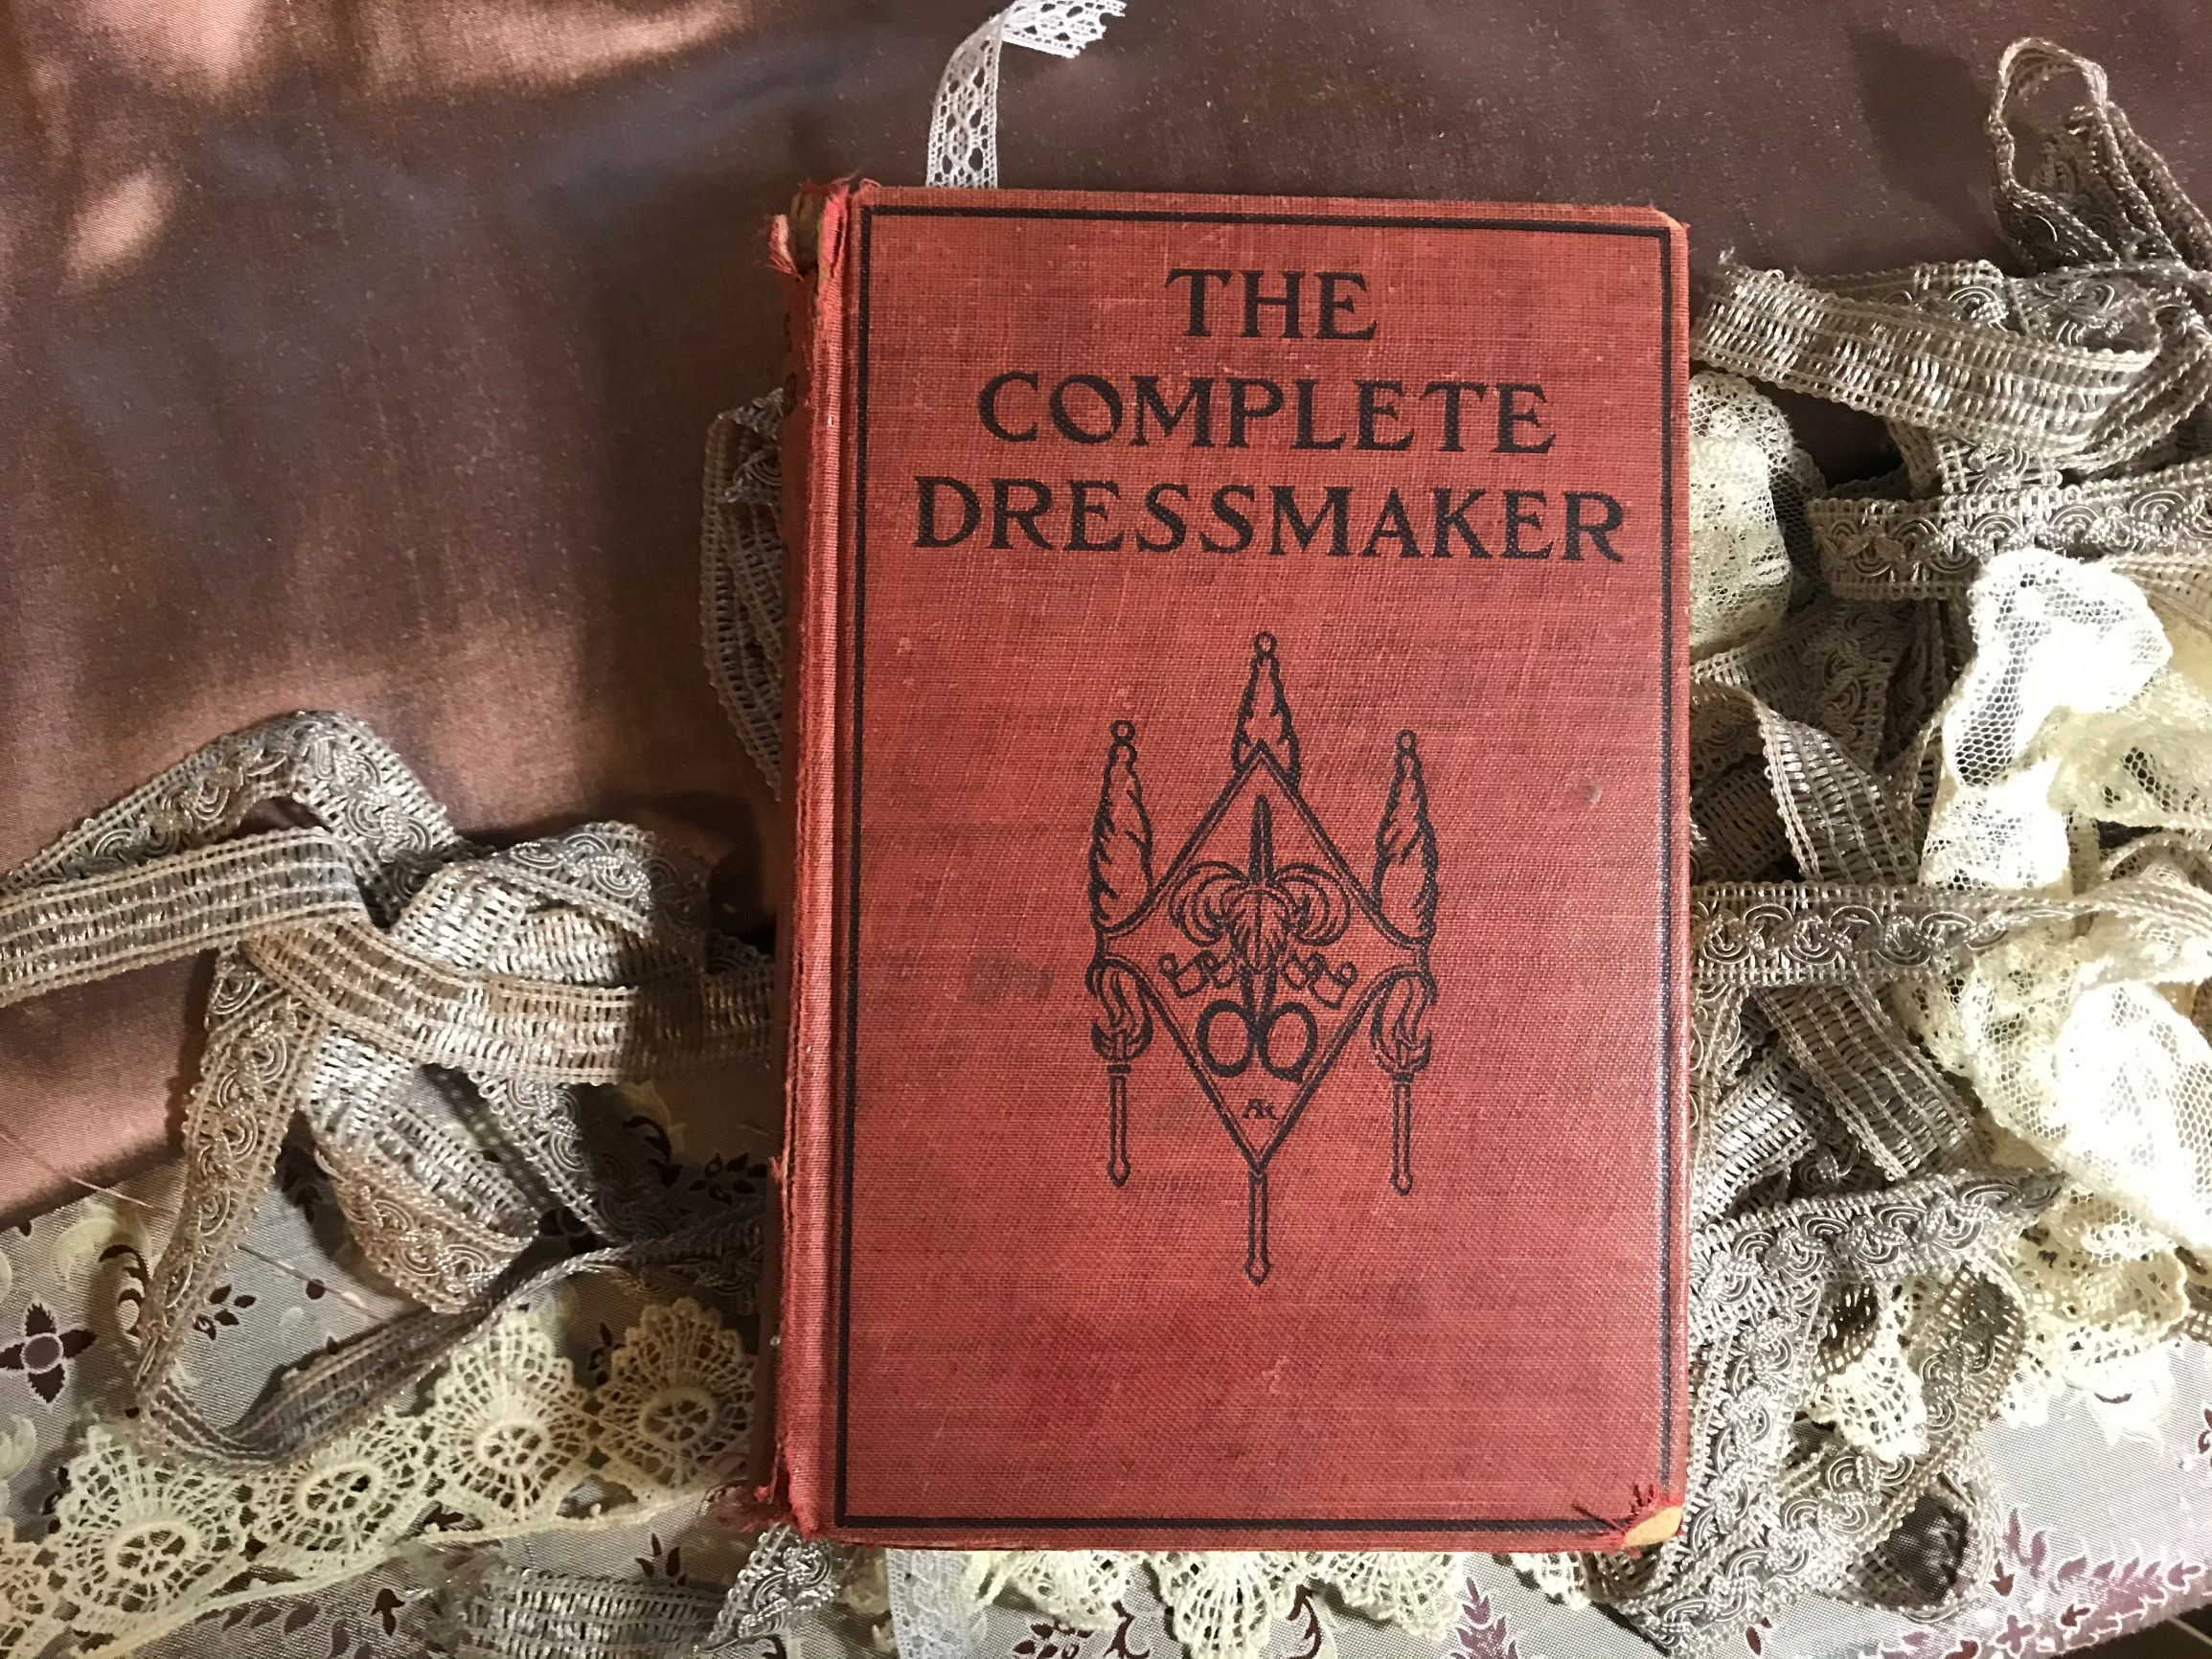 The Complete Dressmaker, 1916 edition; first published in 1907